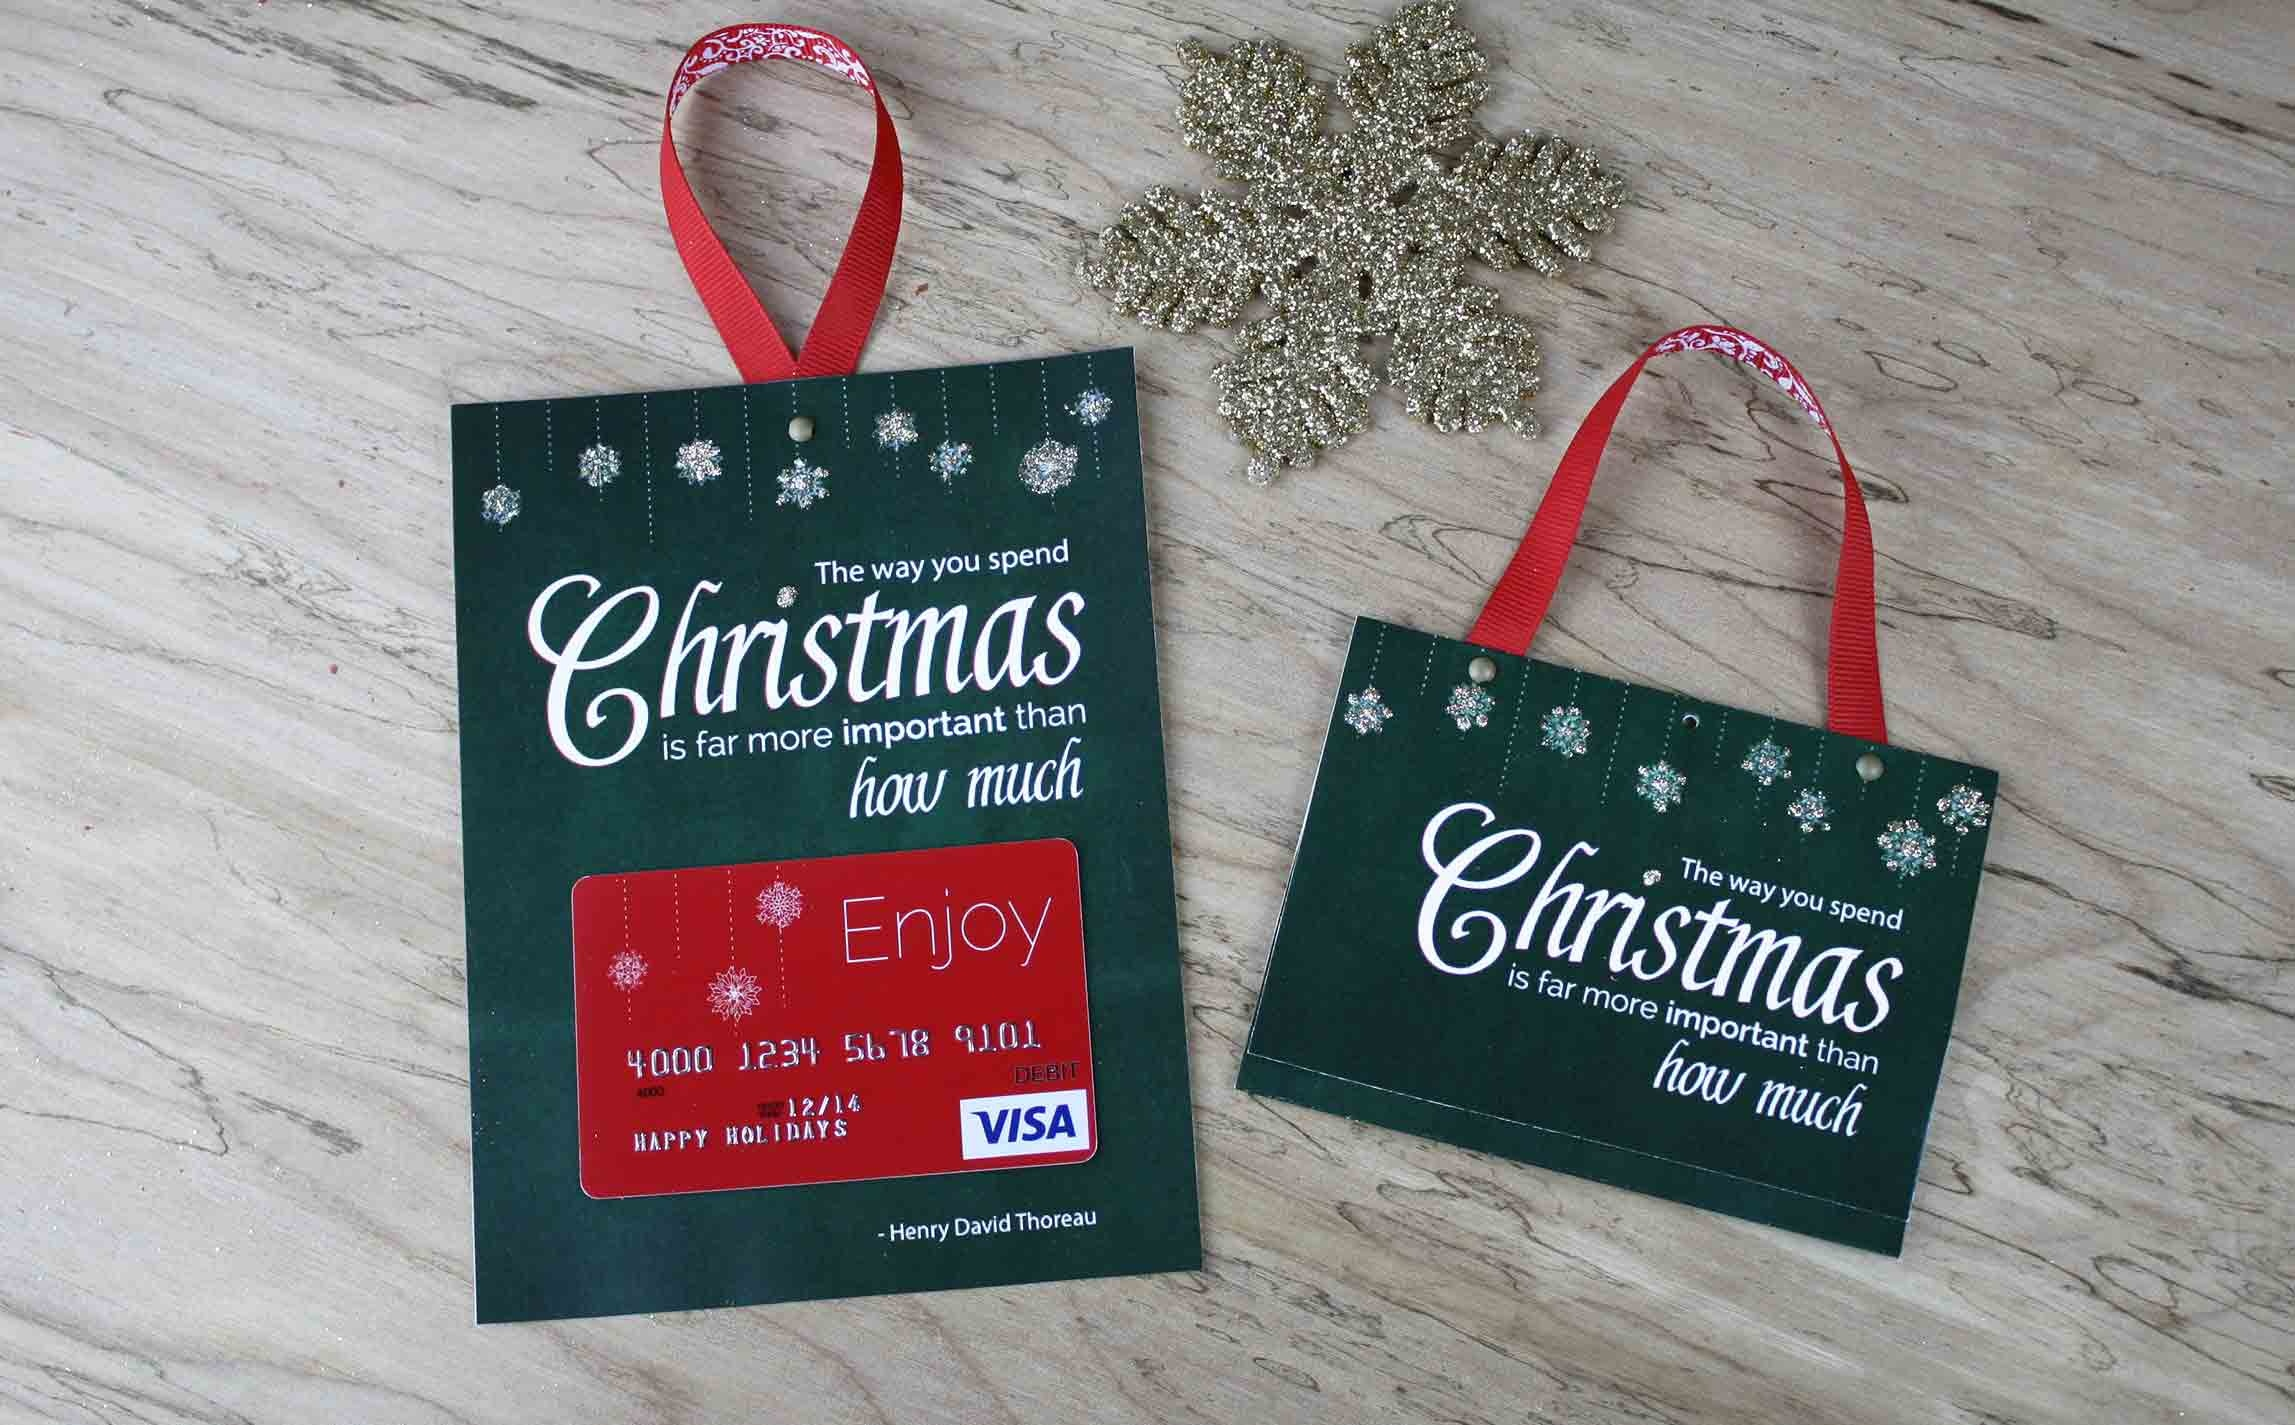 Free Printable| Gift Card Holder Spend Christmas - Create Your Own Free Printable Christmas Cards